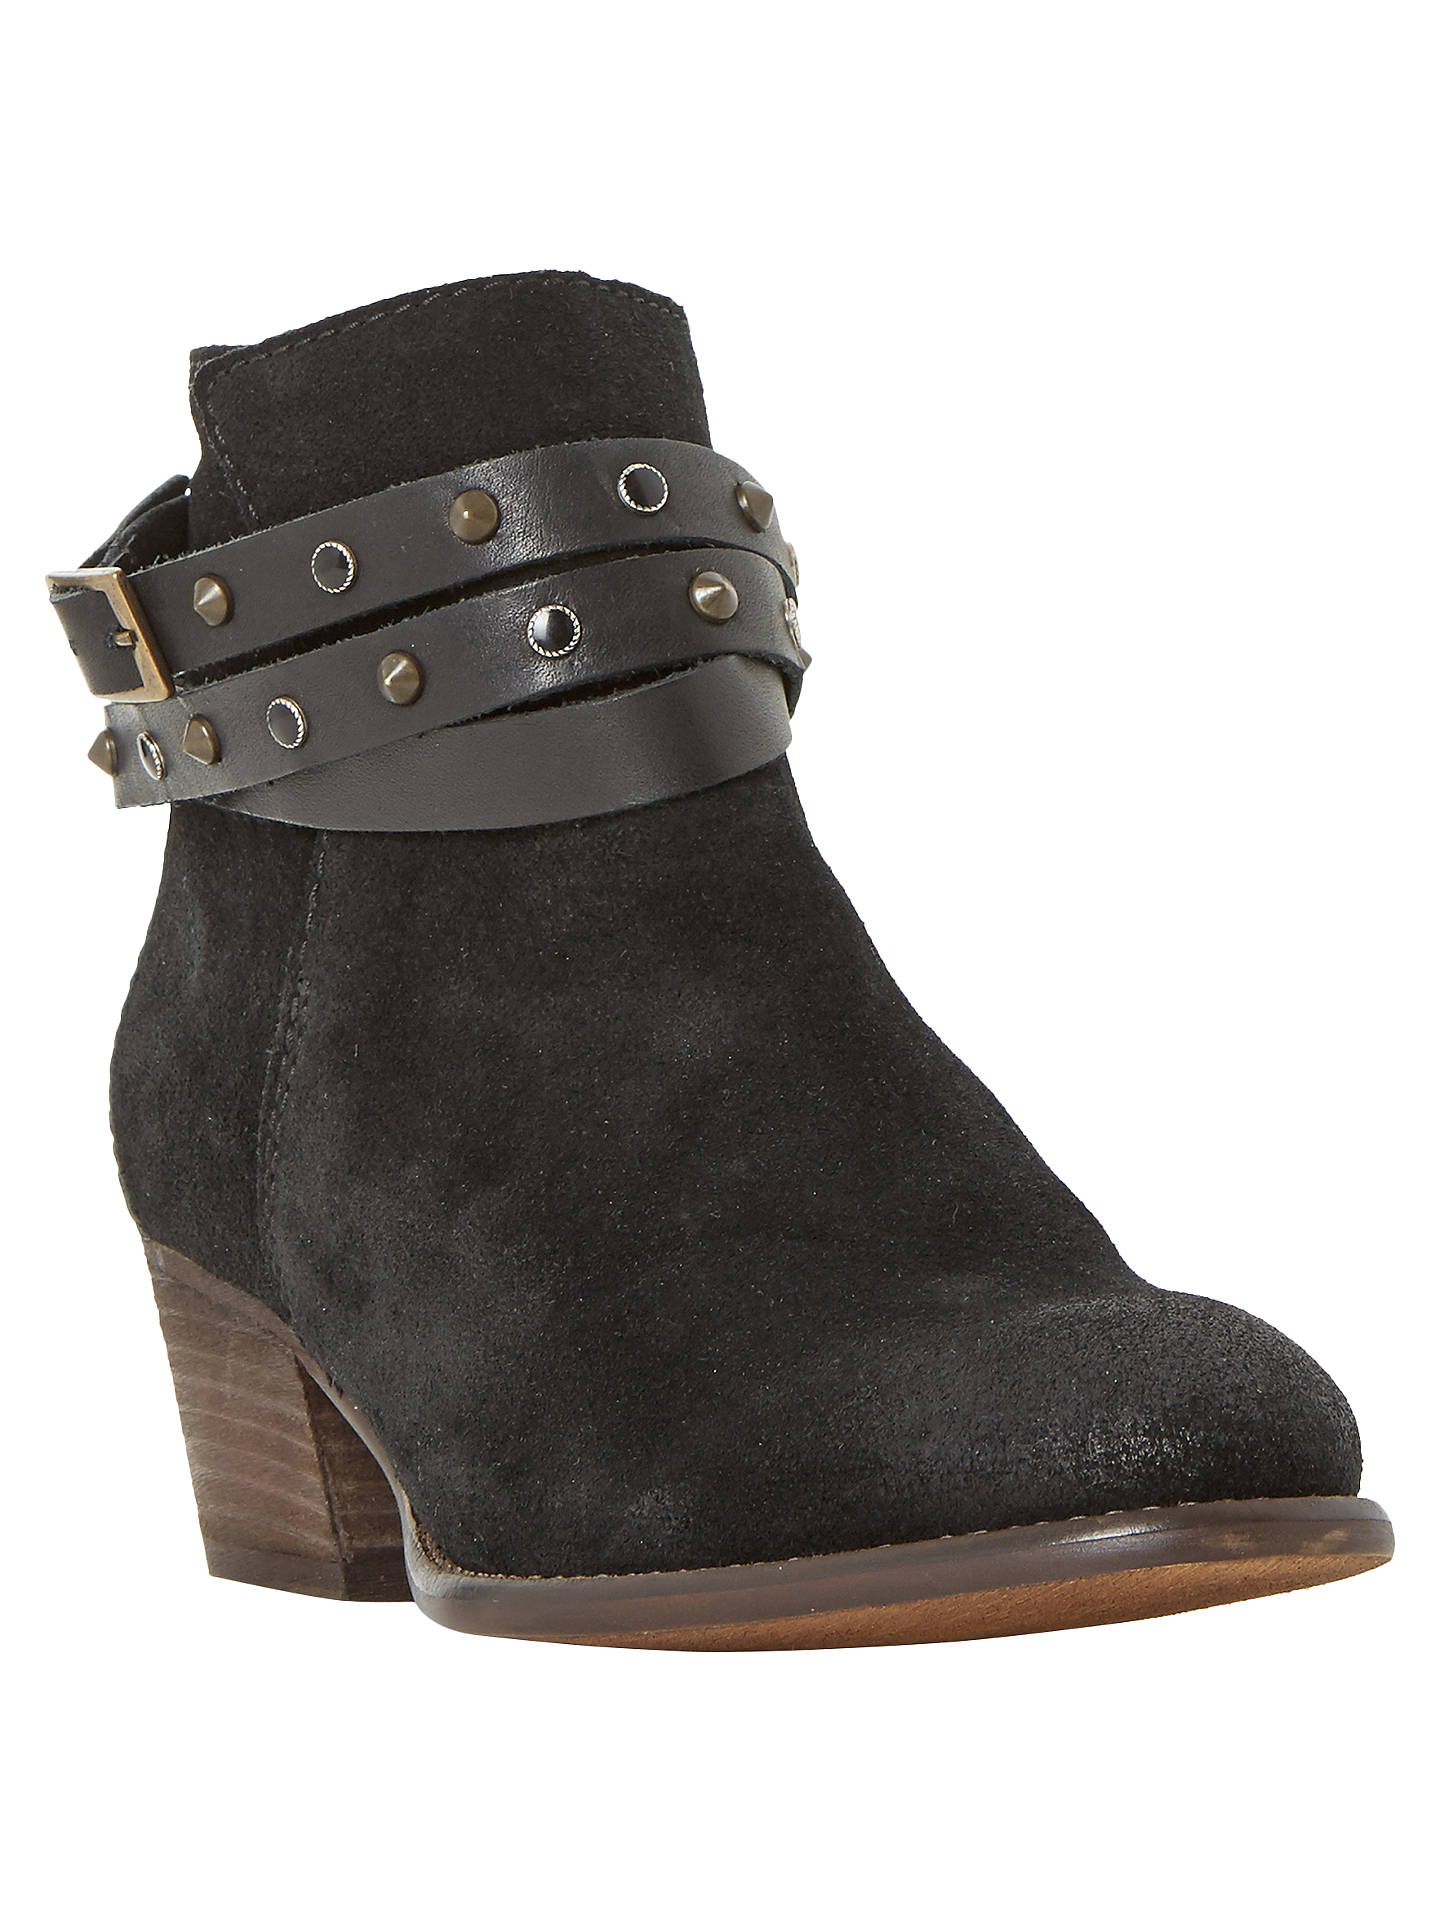 BuyBertie Prynceton Block Heeled Ankle Boots, Black, 3 Online at johnlewis.com